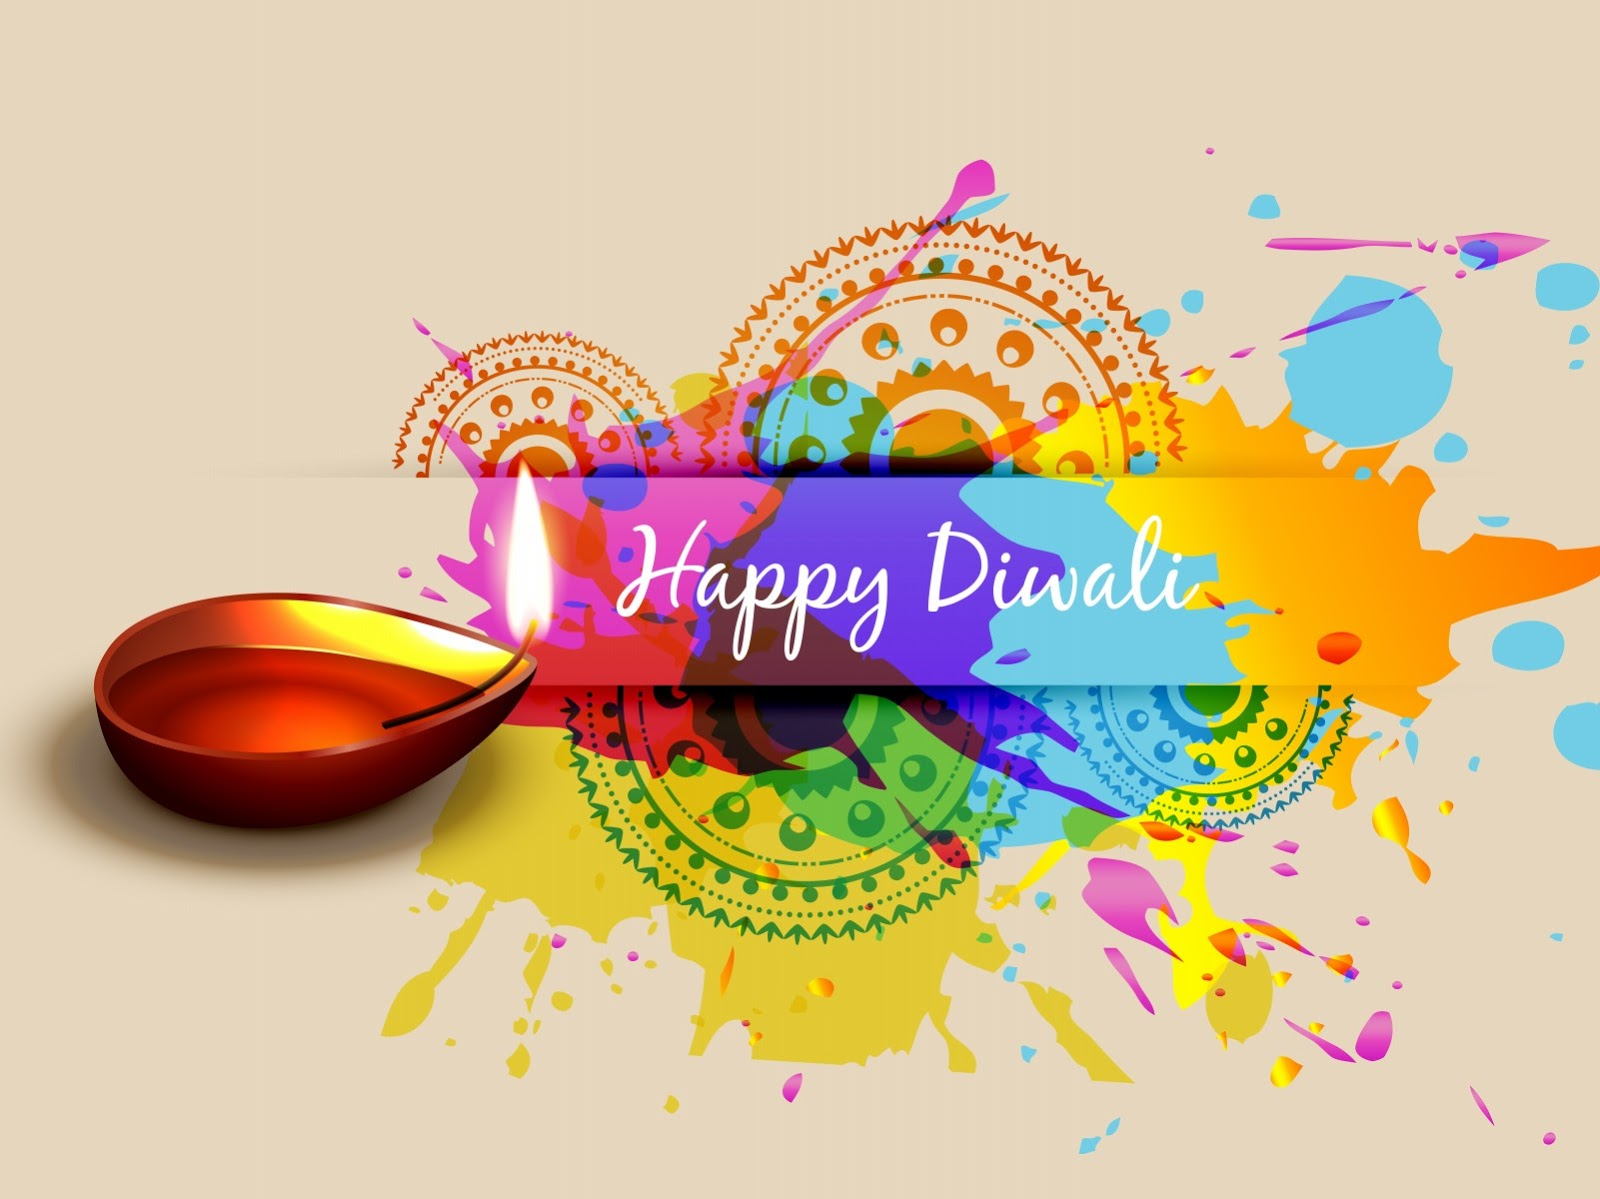 Deepavali Essay Deepavali And Images That Depicts Your Emotions Life